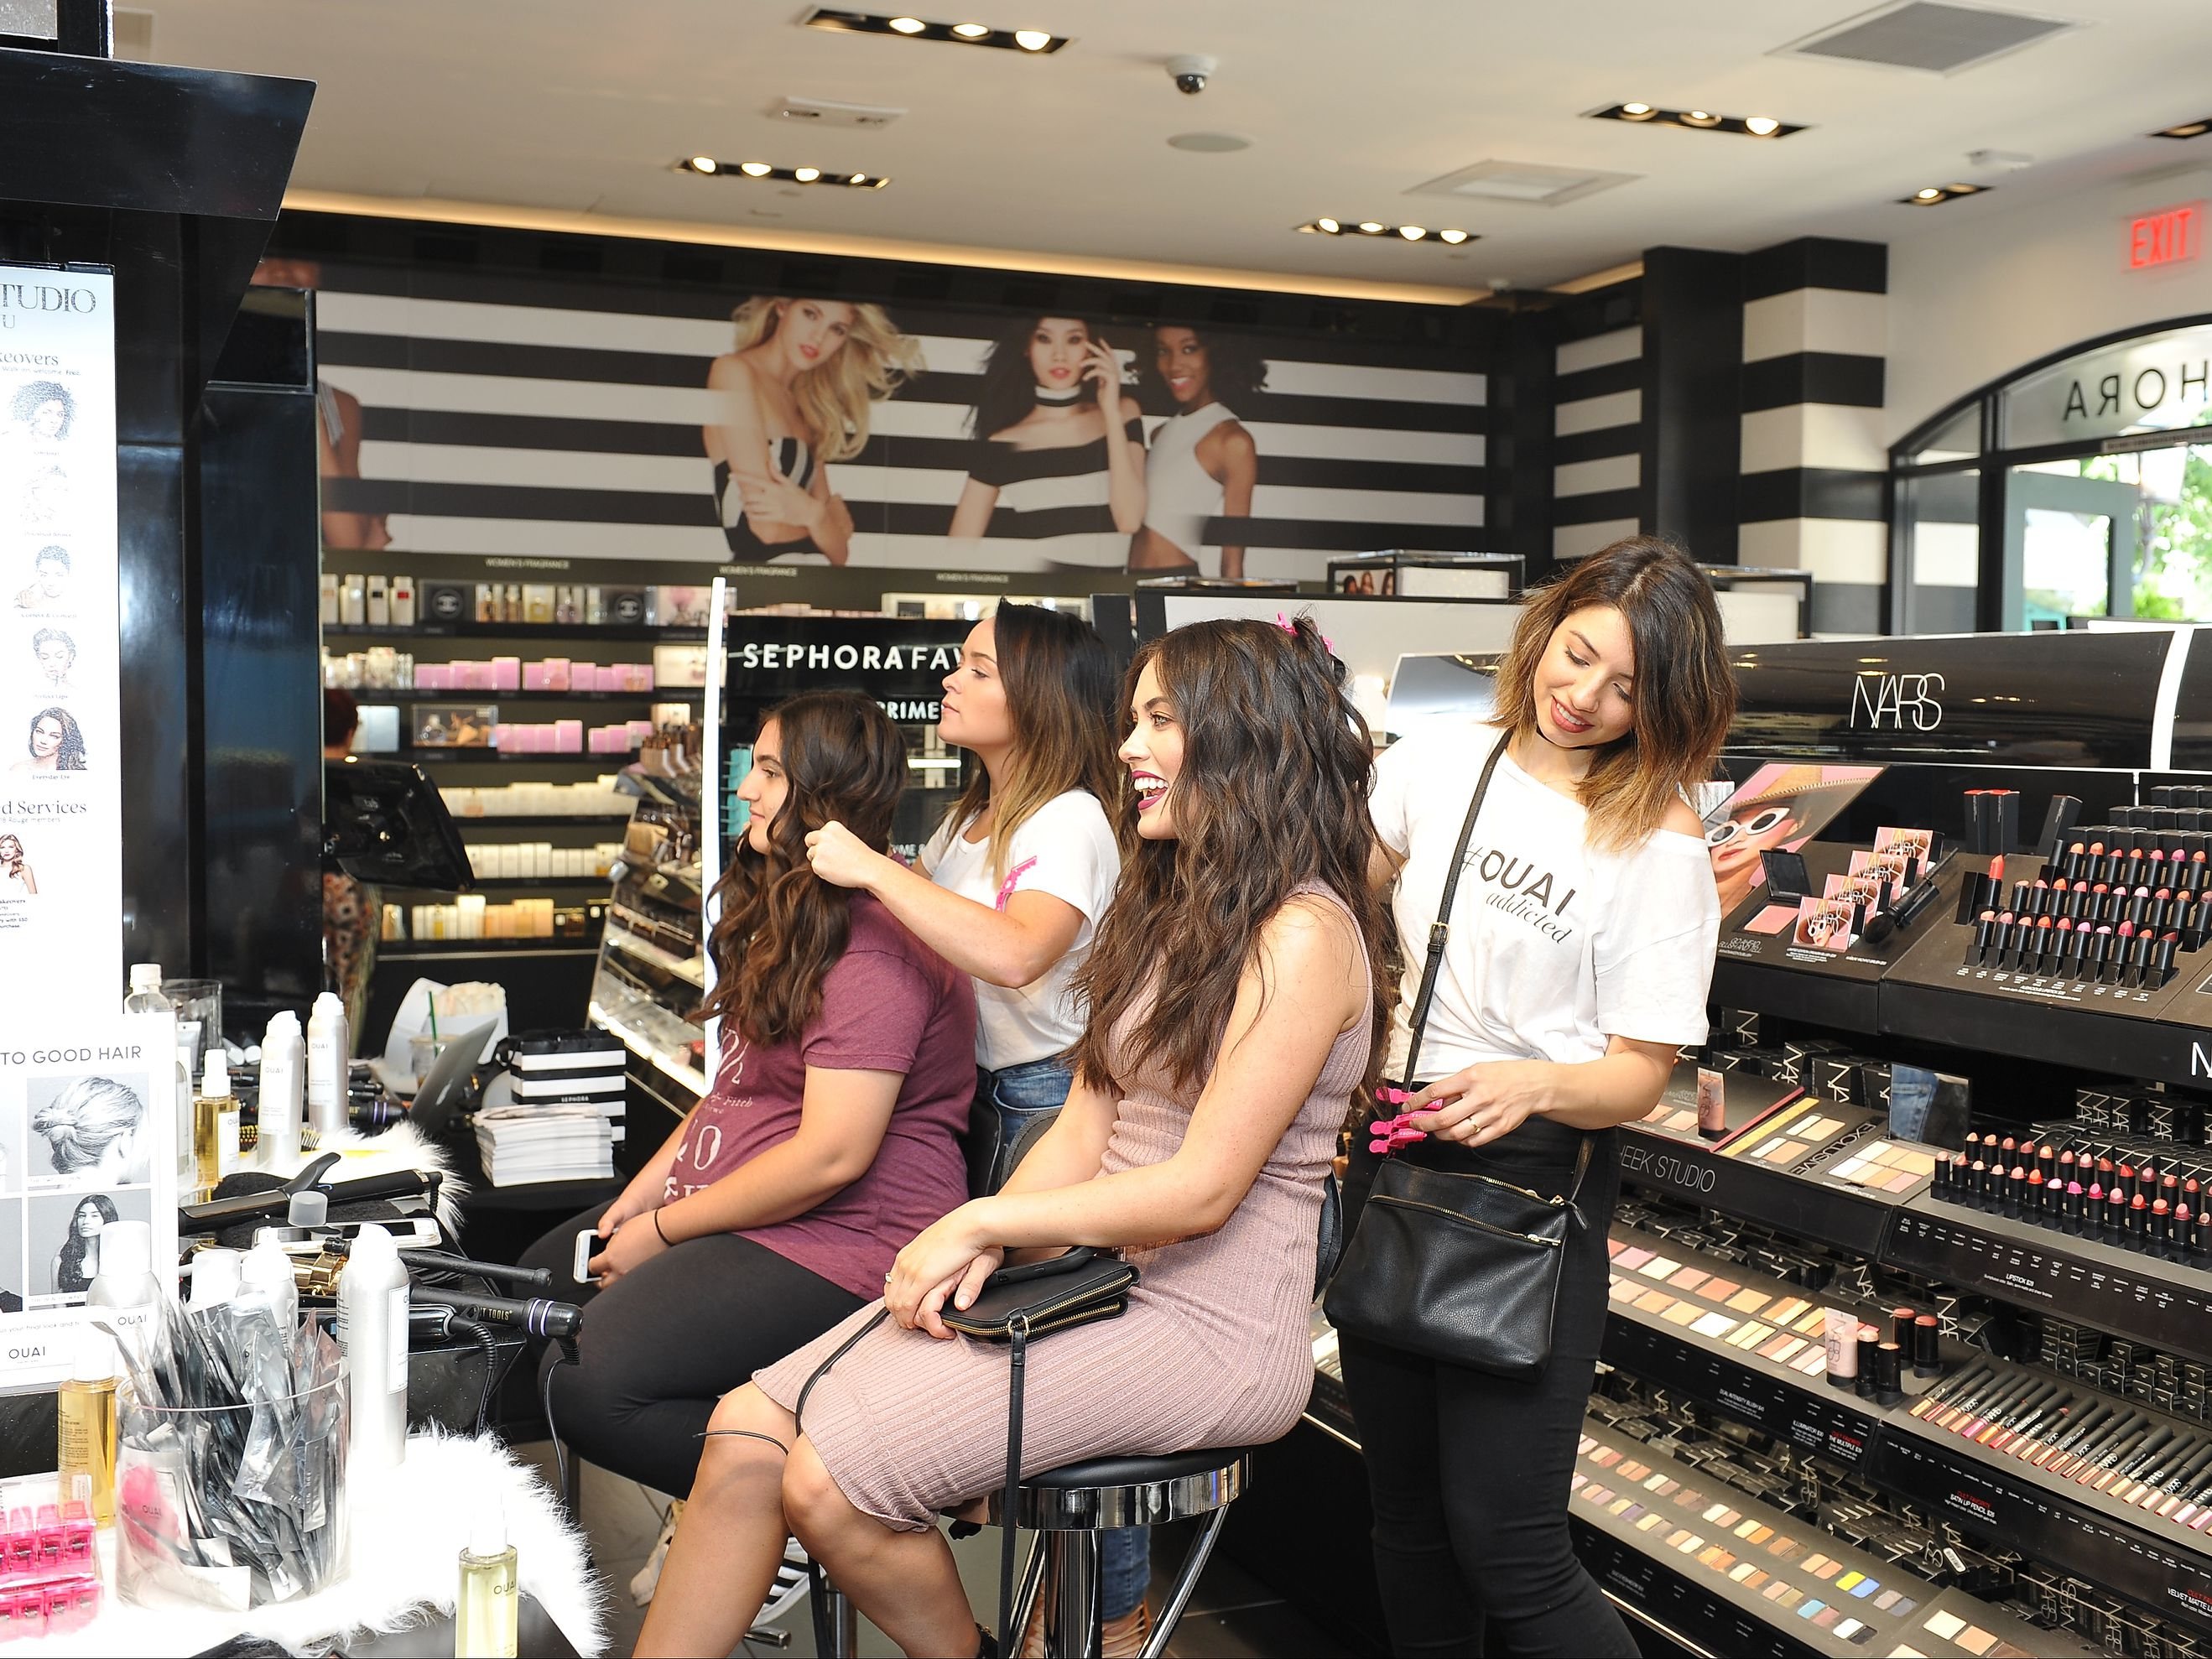 How To Get Sephora Free Samples